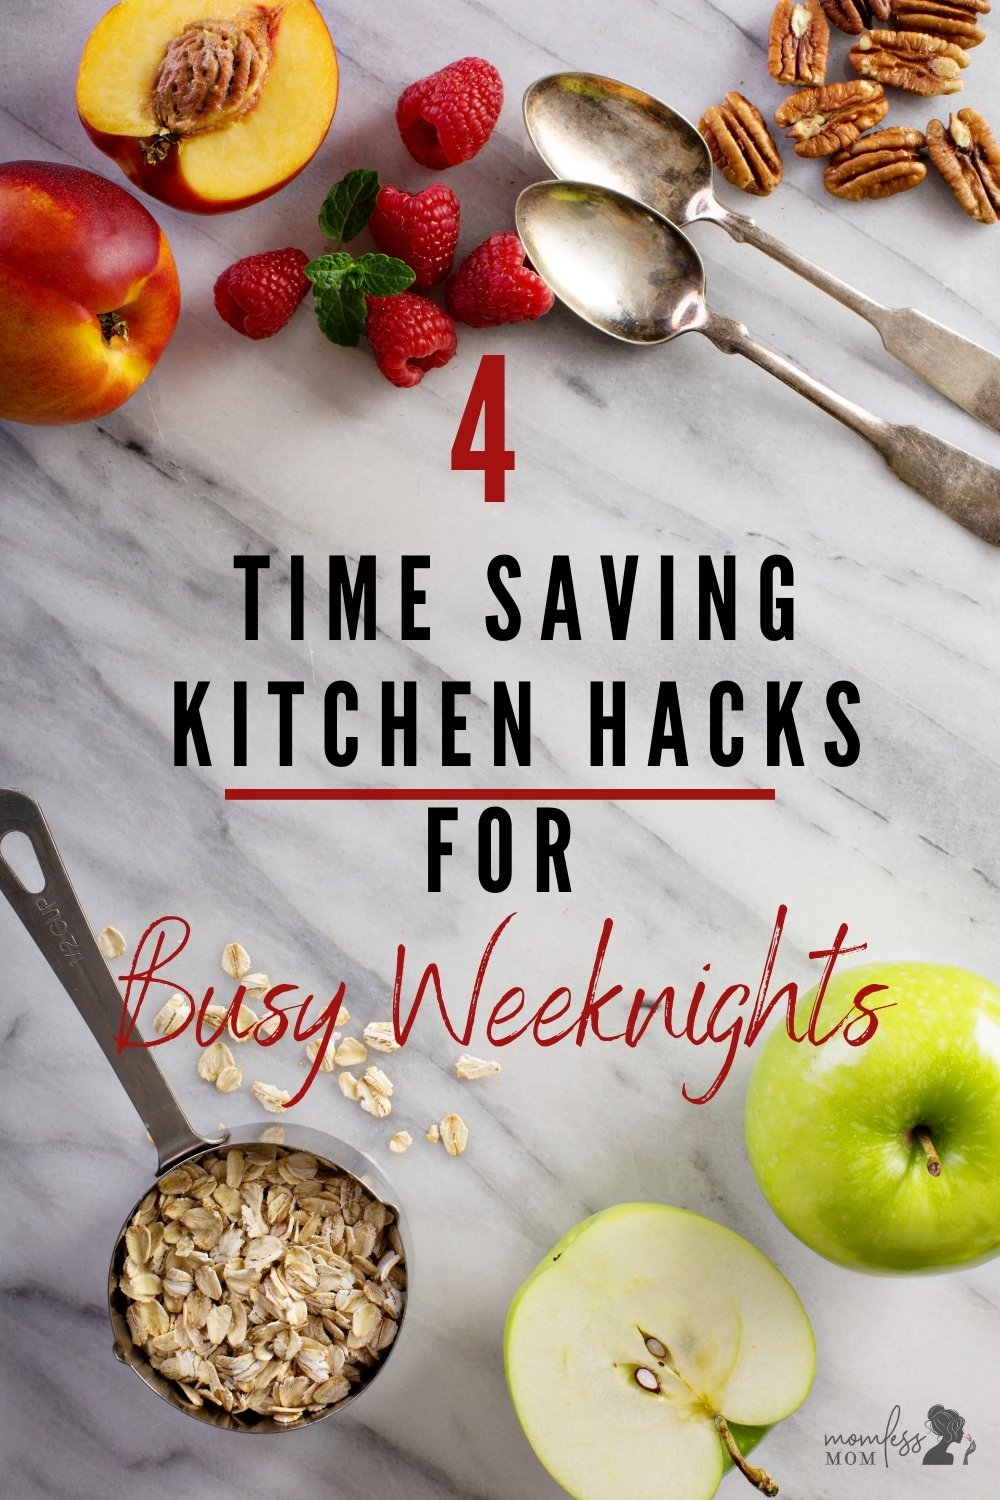 4 time saving kitchen hacks for weeknight meals